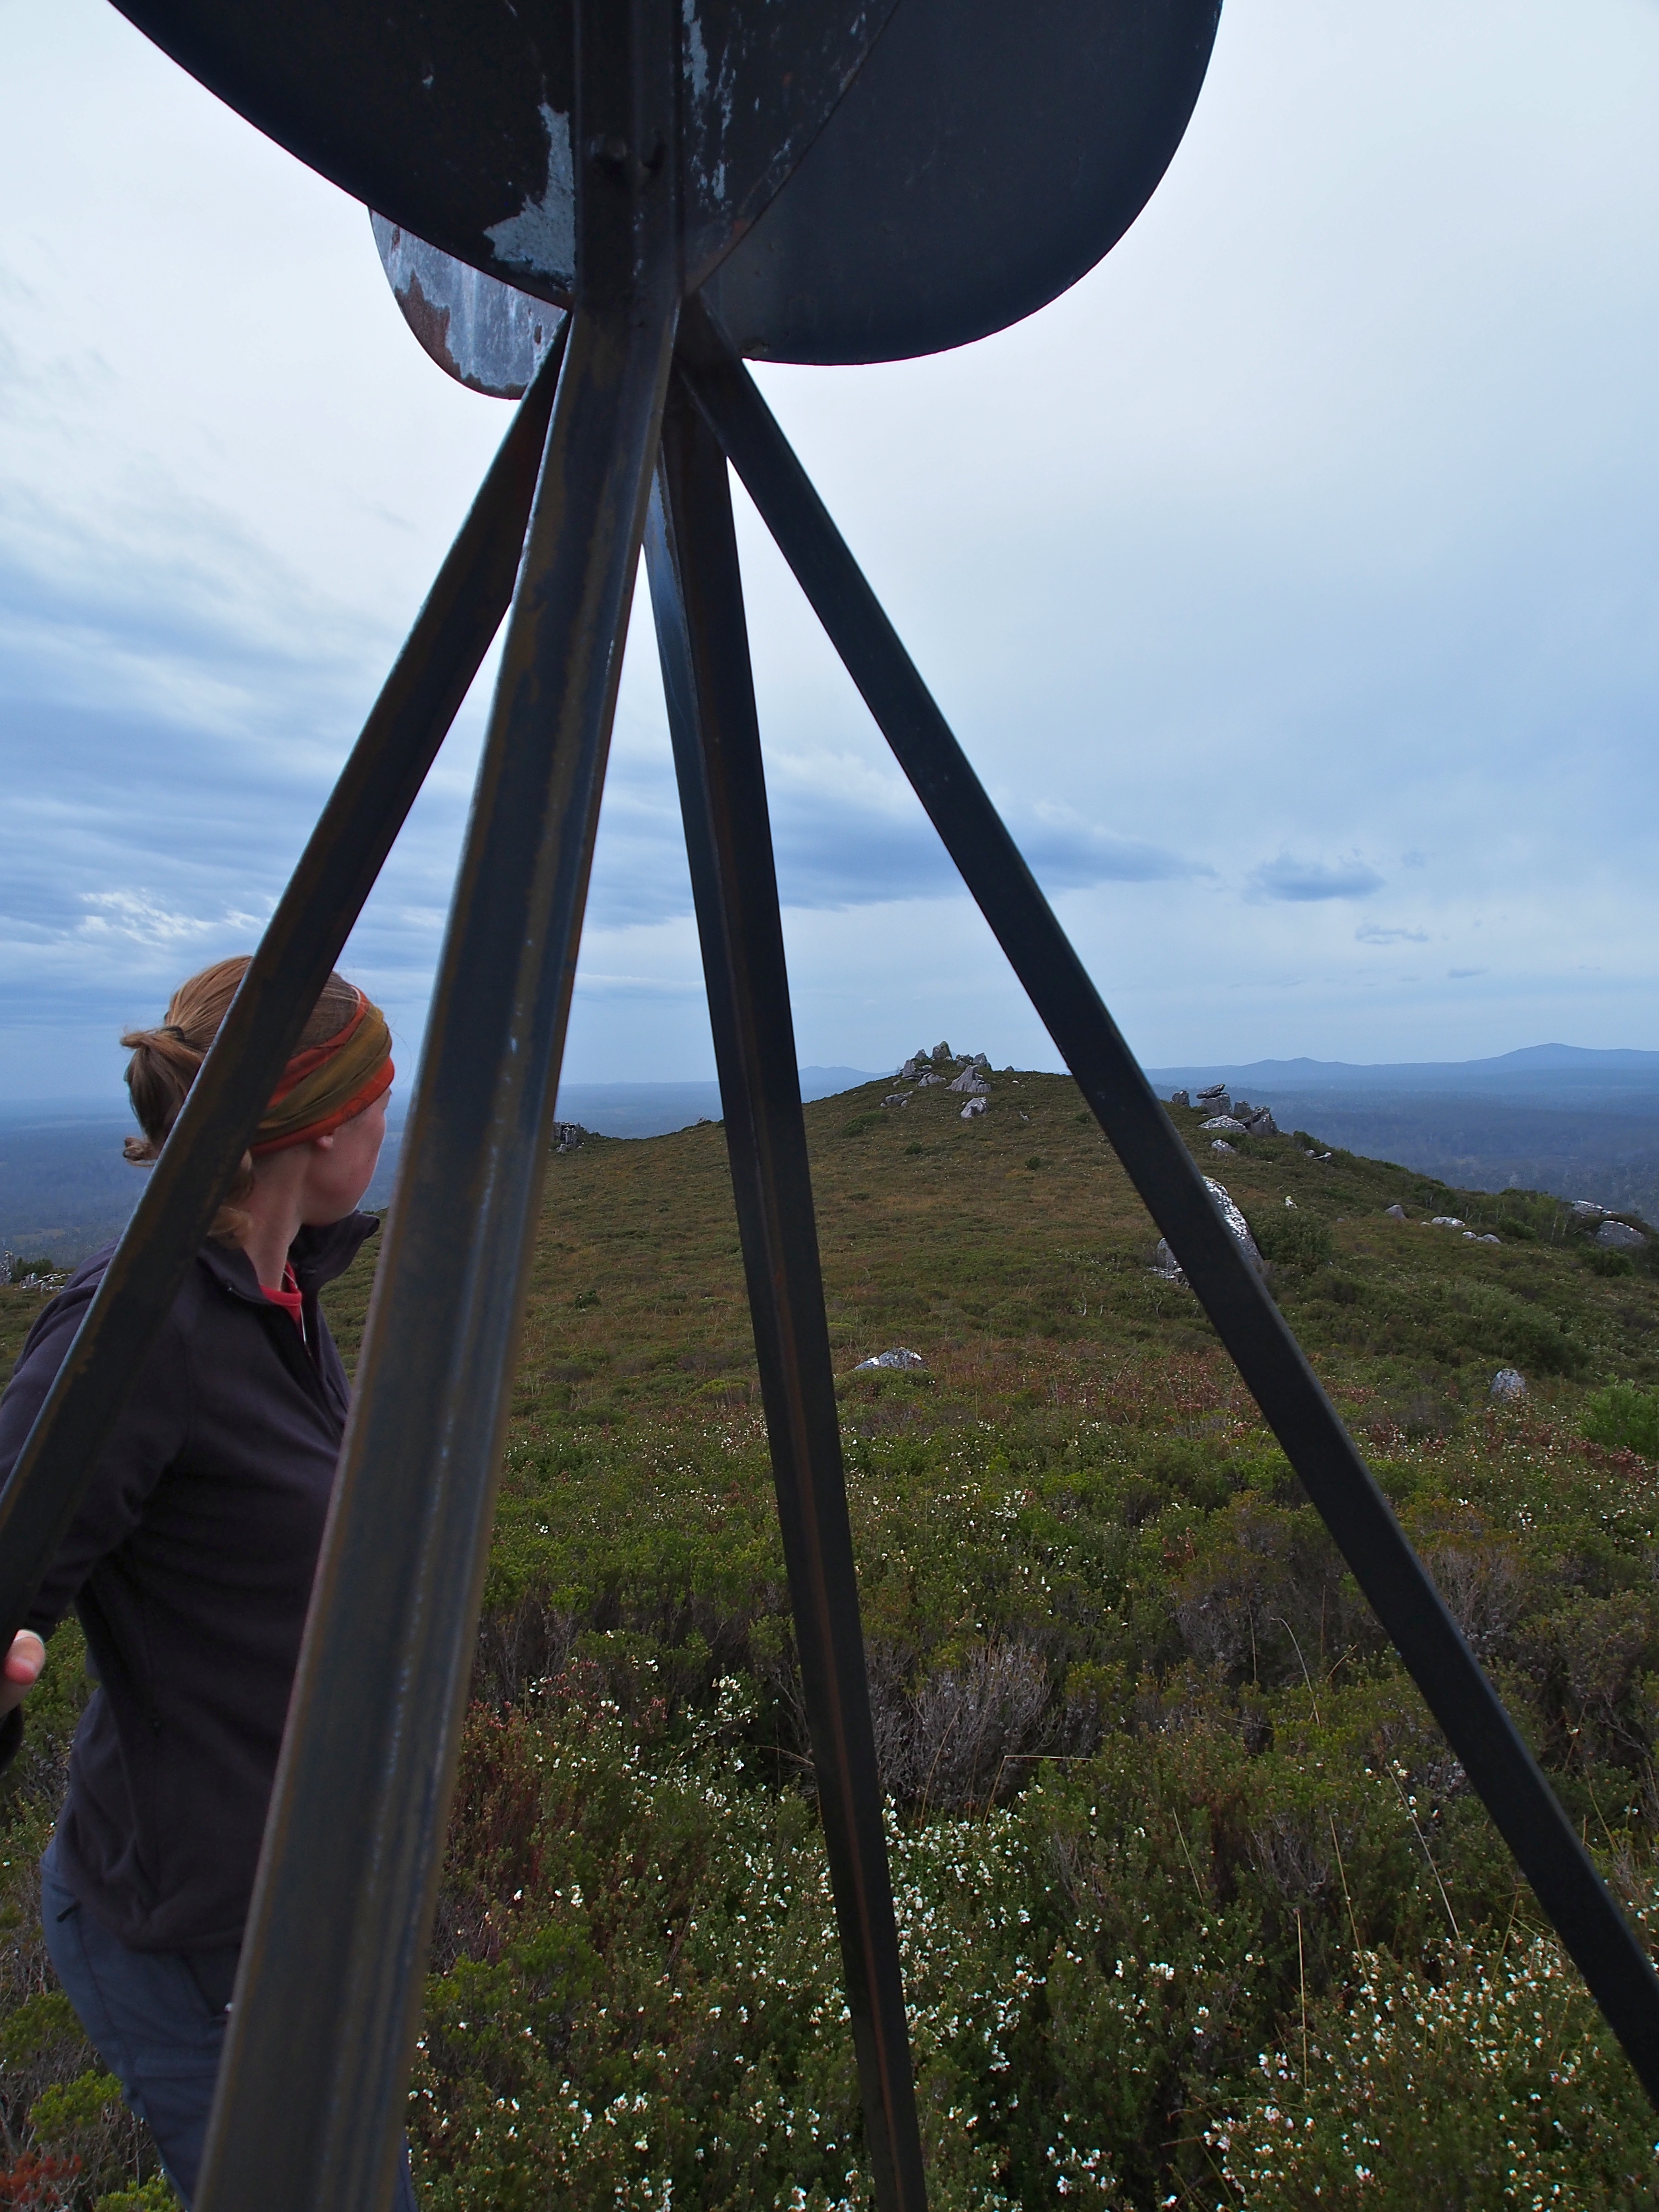 And from the trig to the summit